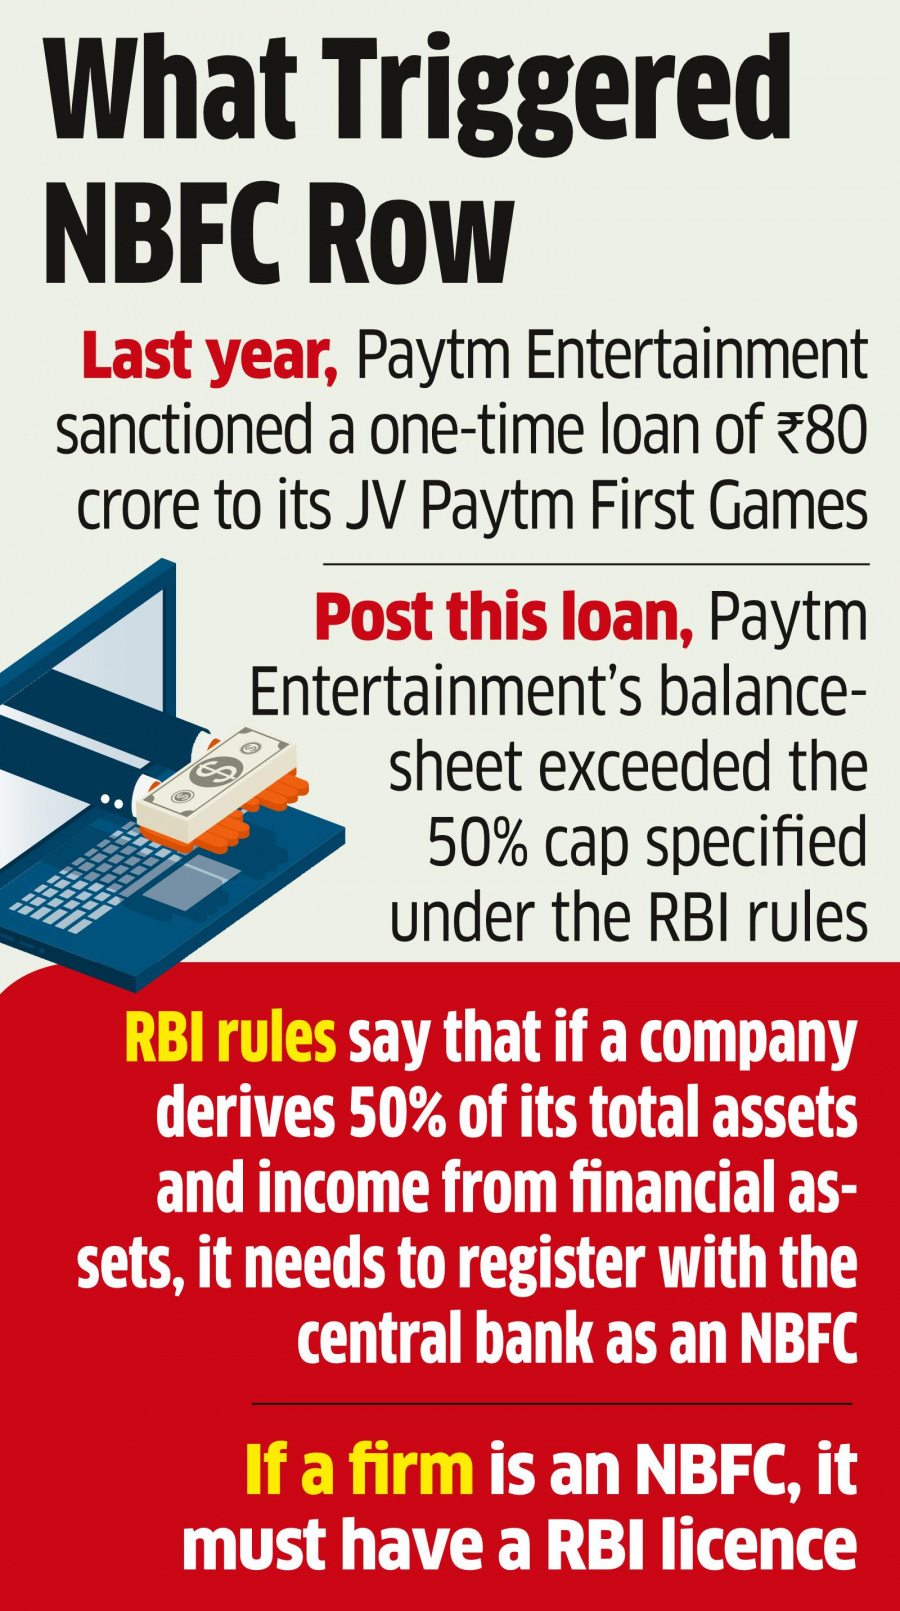 NBFC, bank of india, reserve bank of india, paytm, FinTech